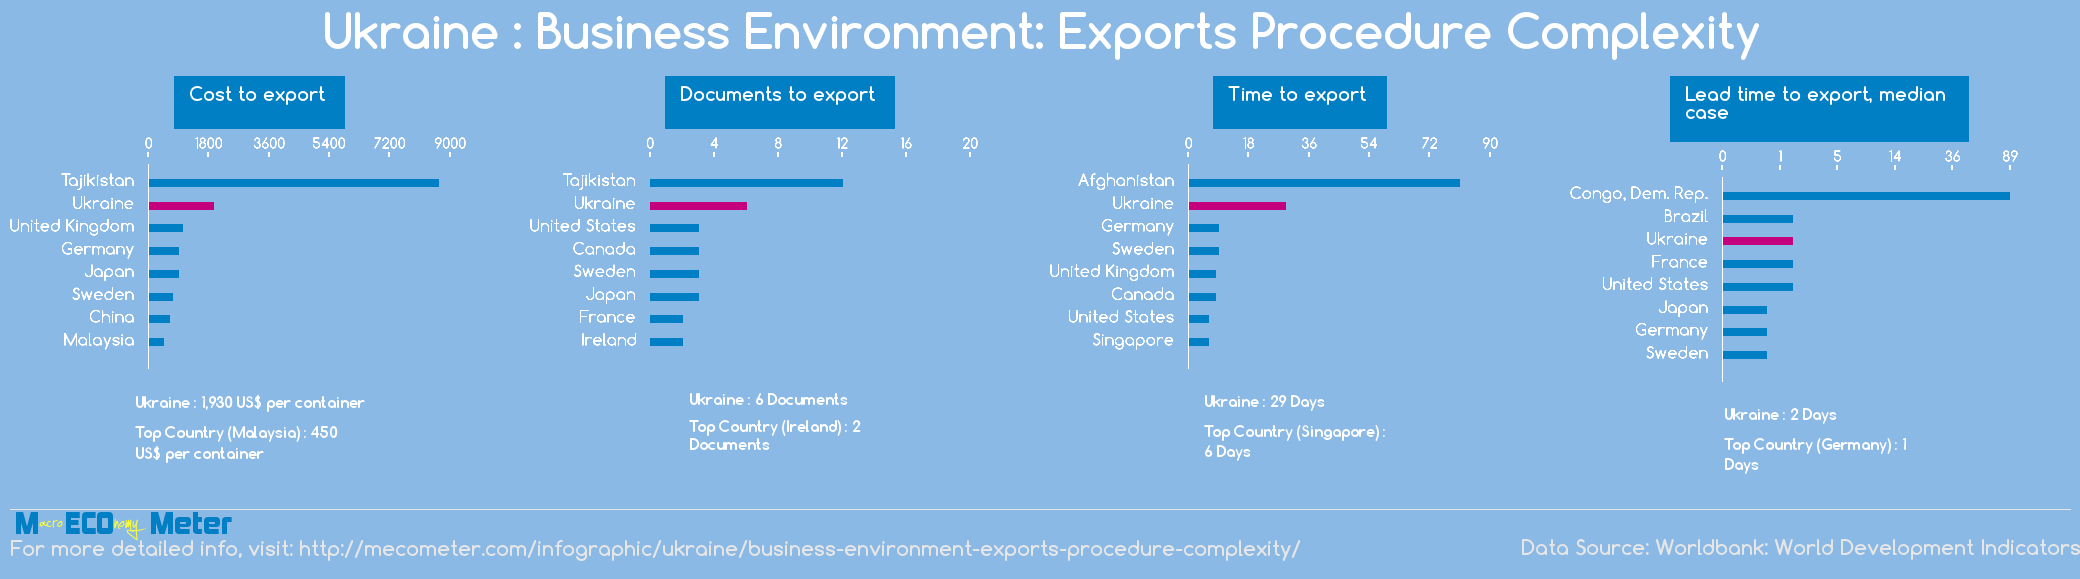 Ukraine : Business Environment: Exports Procedure Complexity